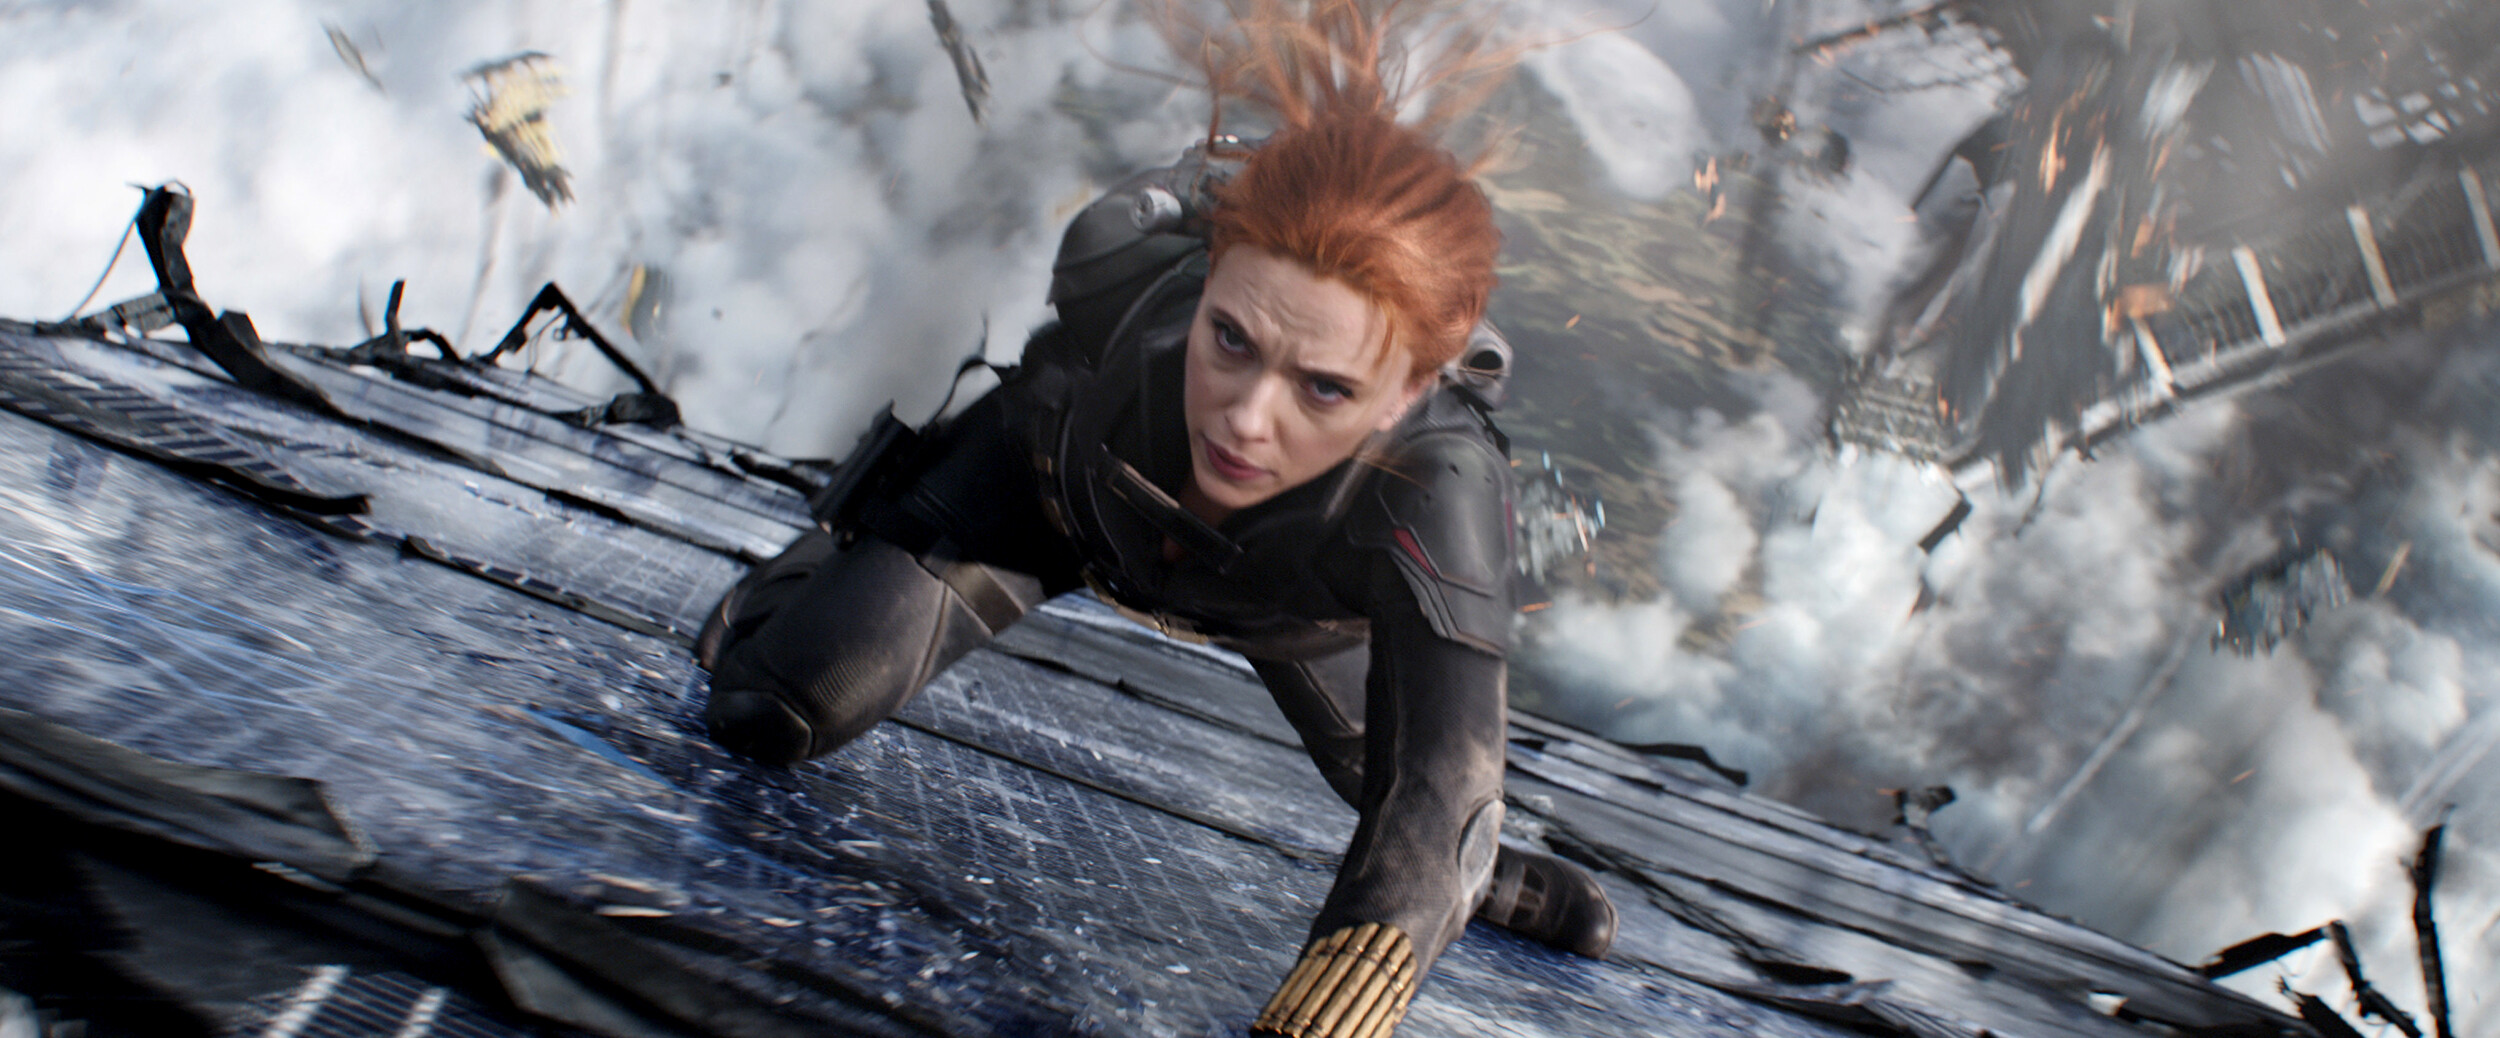 Marvel's long-awaited release of 'Black Widow' is a triumphant moment for the movie industry